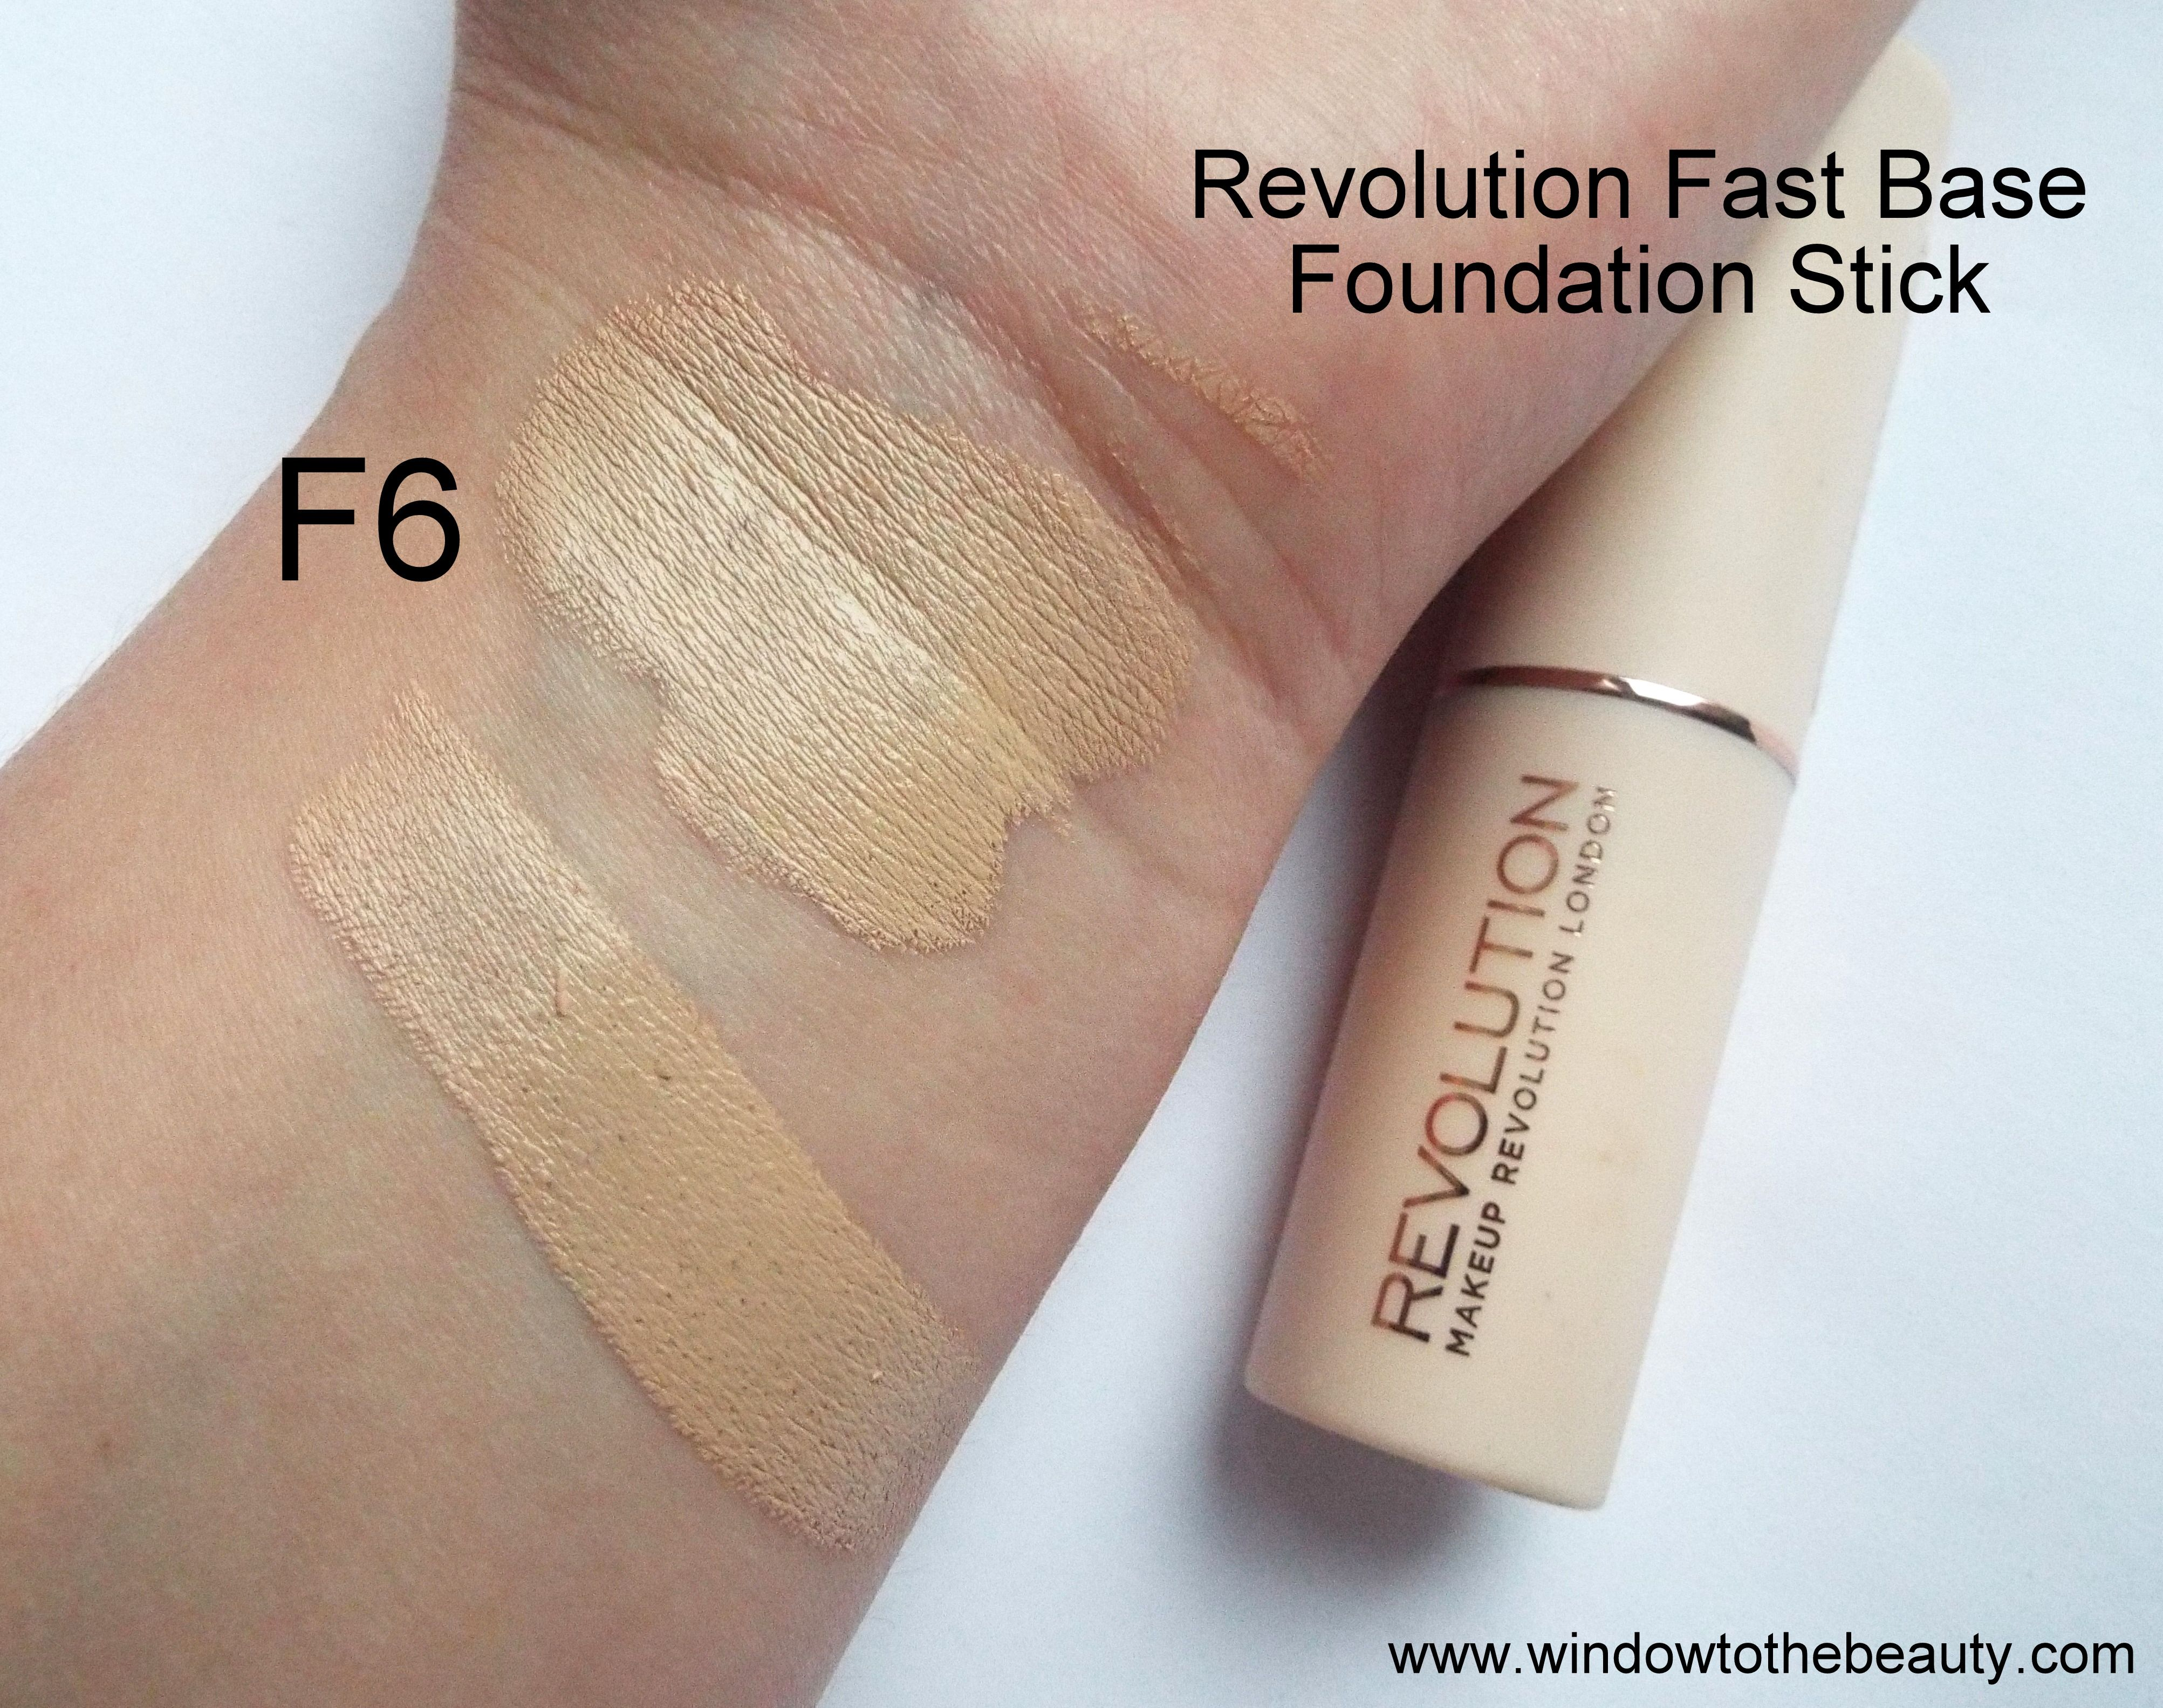 Revolution Fast Base Foundation Stick F6 Stick